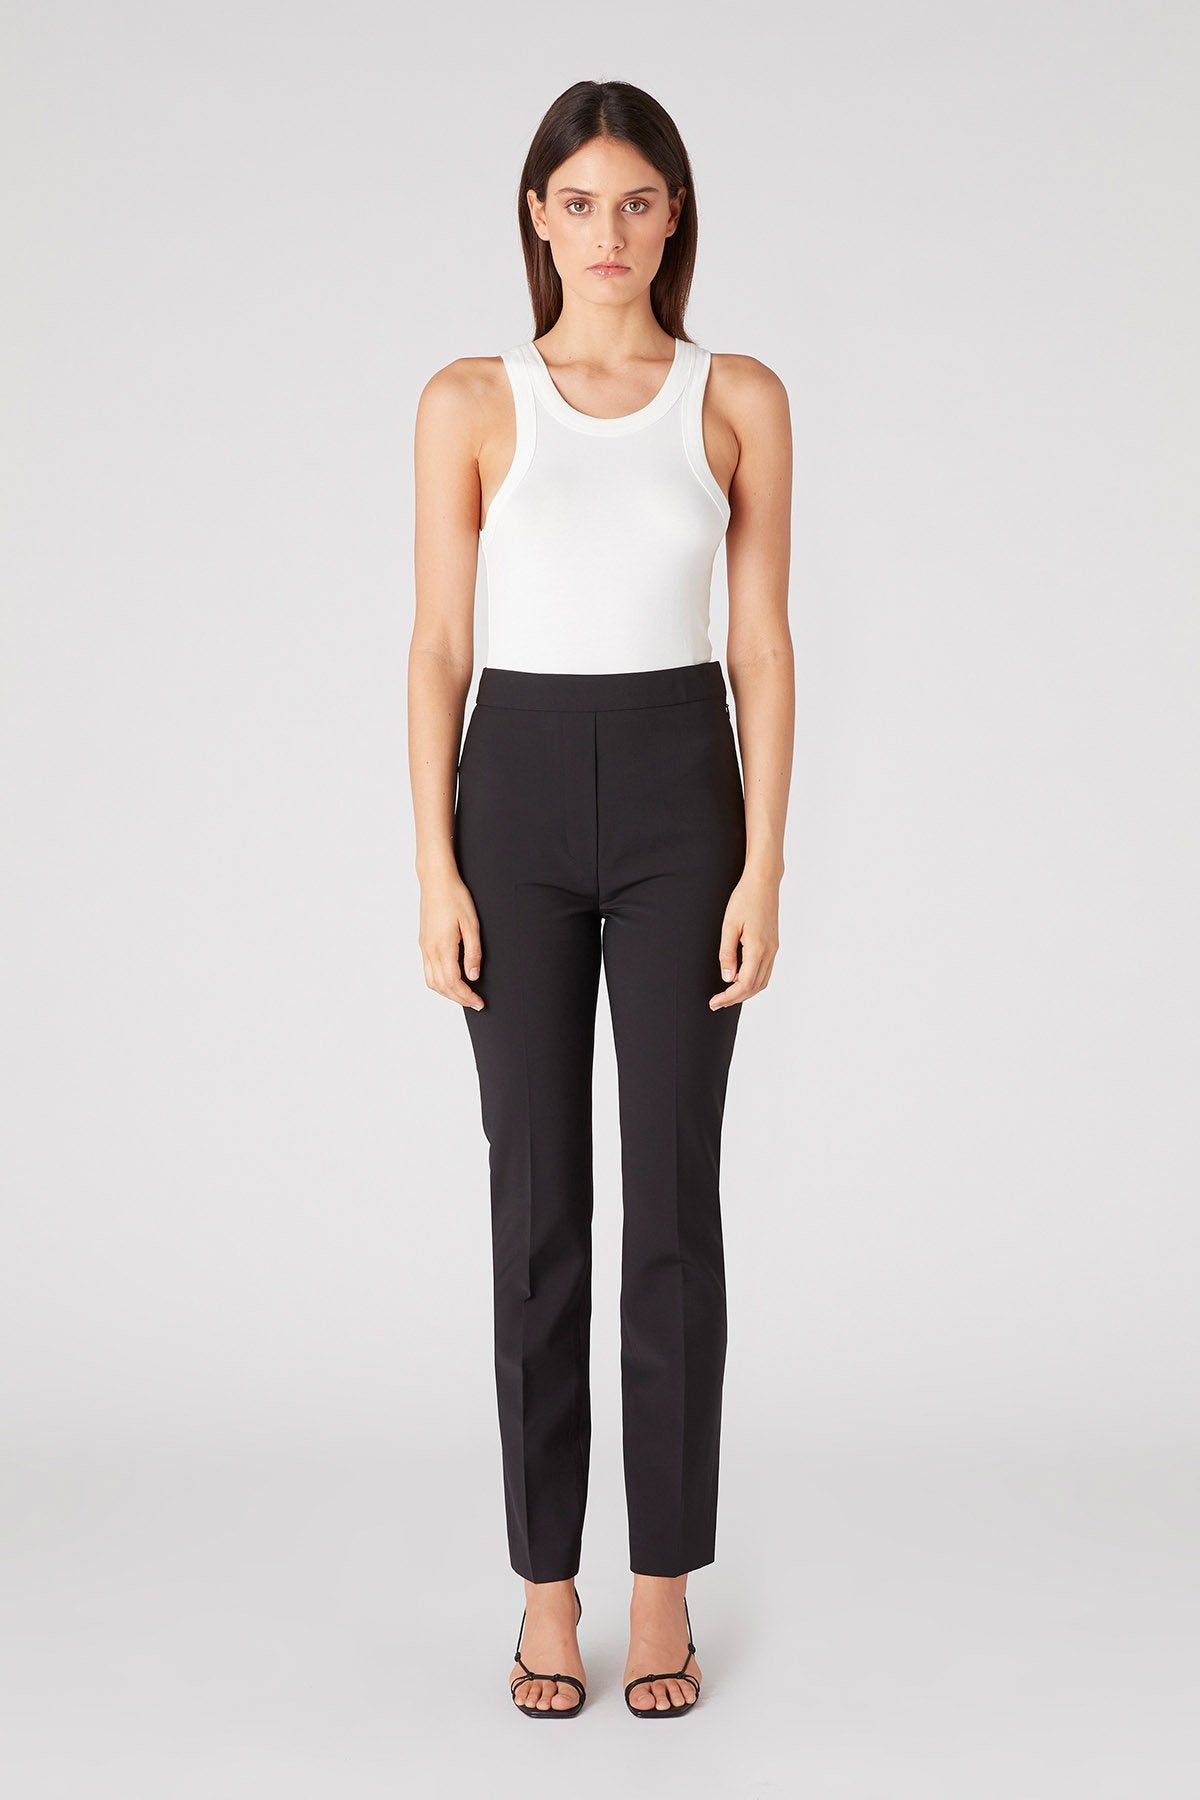 Camilla and Marc Womens Pants Camilla and Marc | Bailey Cigarette Pant - Black